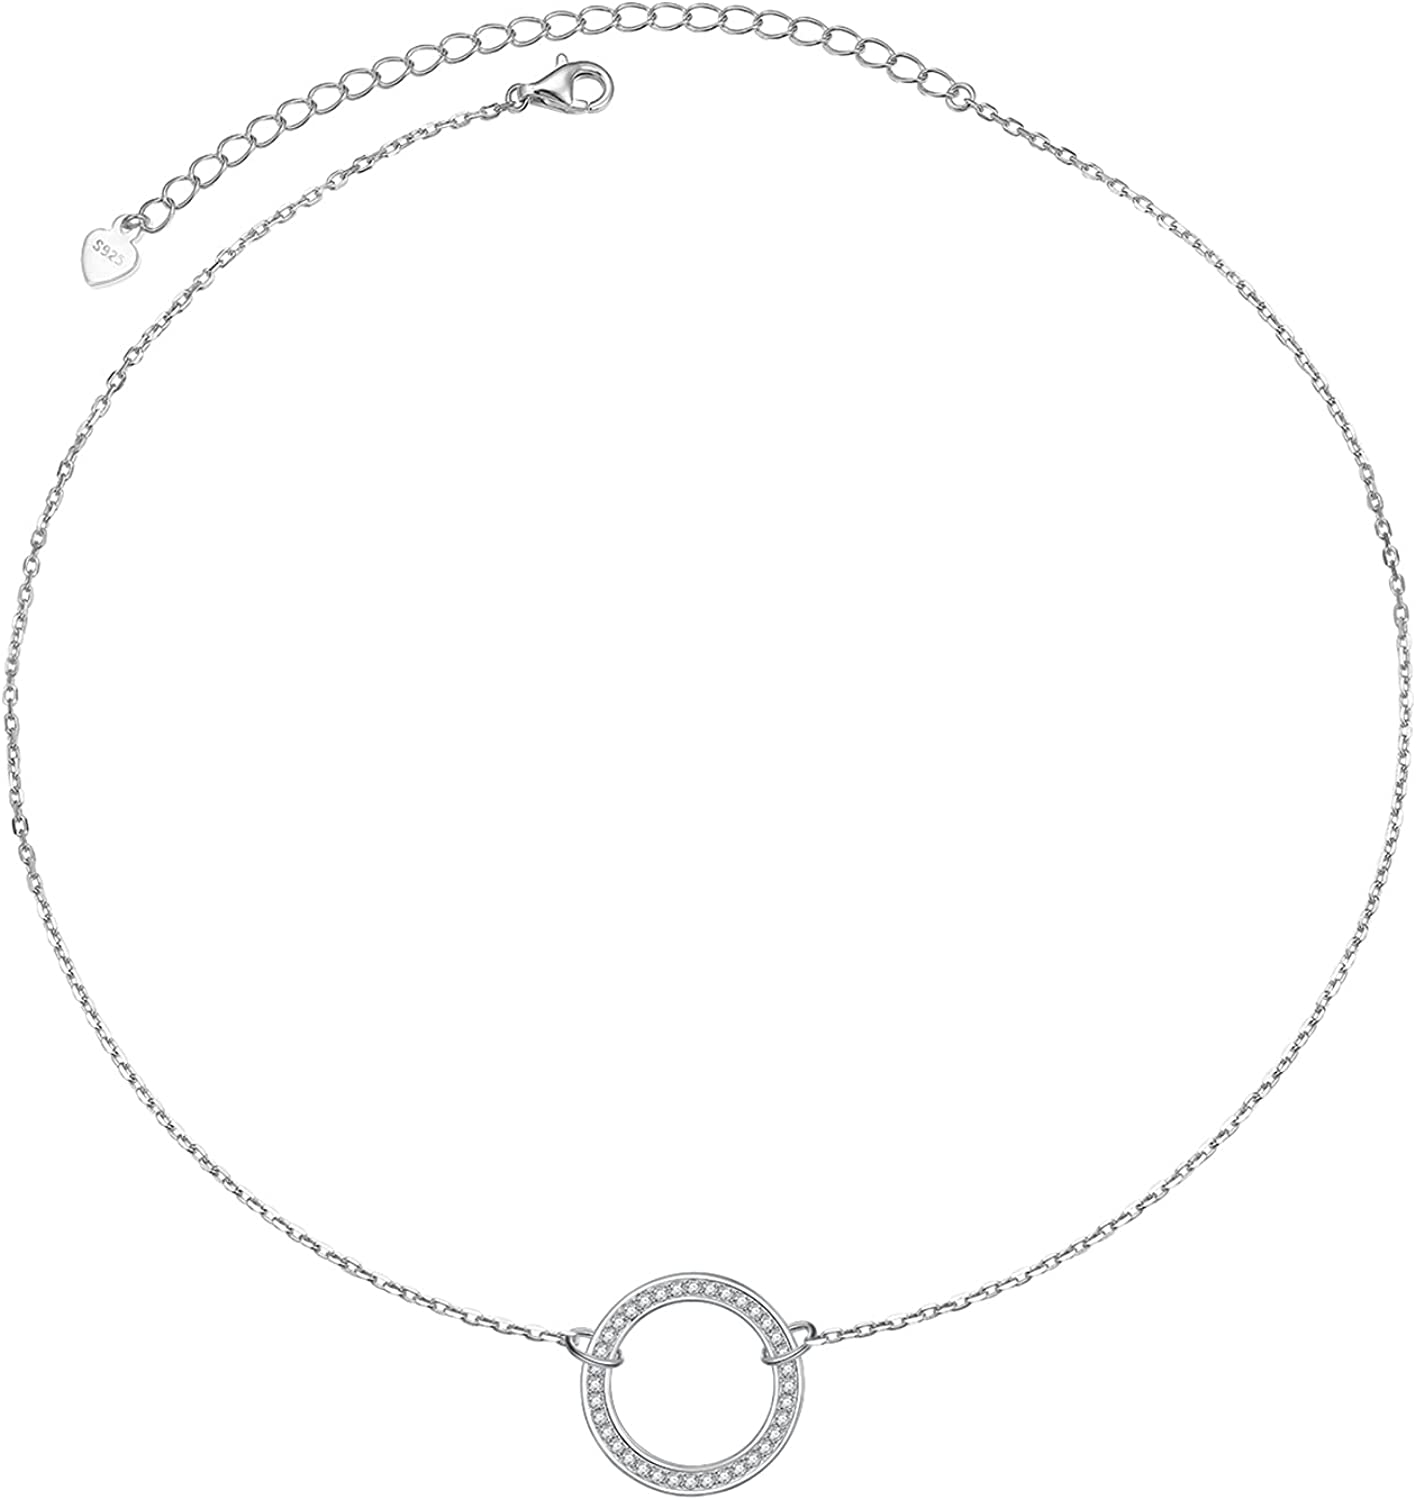 S925 Sterling Silver Dainty Simple Ad Choker wholesale Rolo Chain Limited time cheap sale Necklace